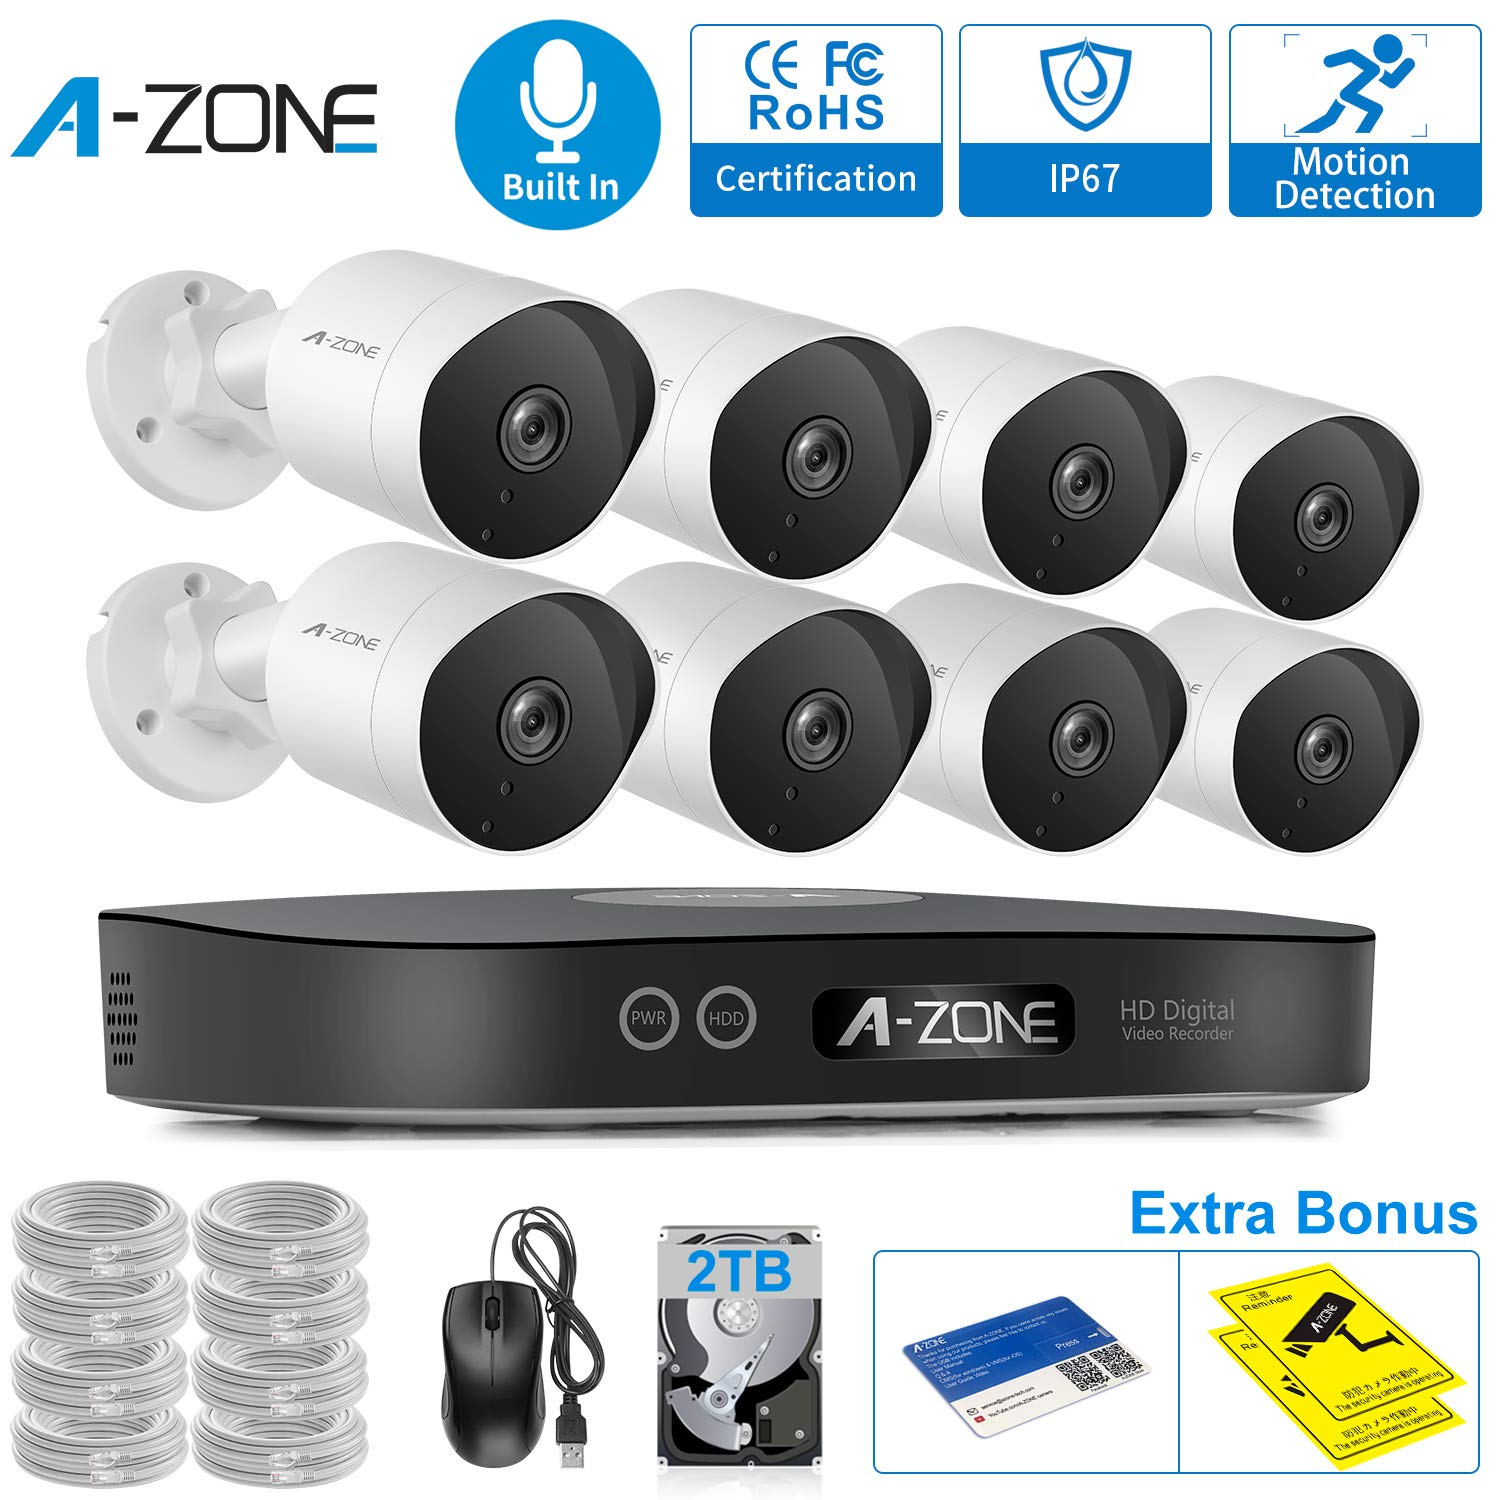 Security Camera System 8CH 1080P Bullet IP PoE System, 8 Outdoor/Indoor 3.6mm Fixed Lens 2.0 Megapixel IP67 Waterproof Cameras,Smart Motion Detection, Free Remote View - 2TB Hard Drive by A-ZONE